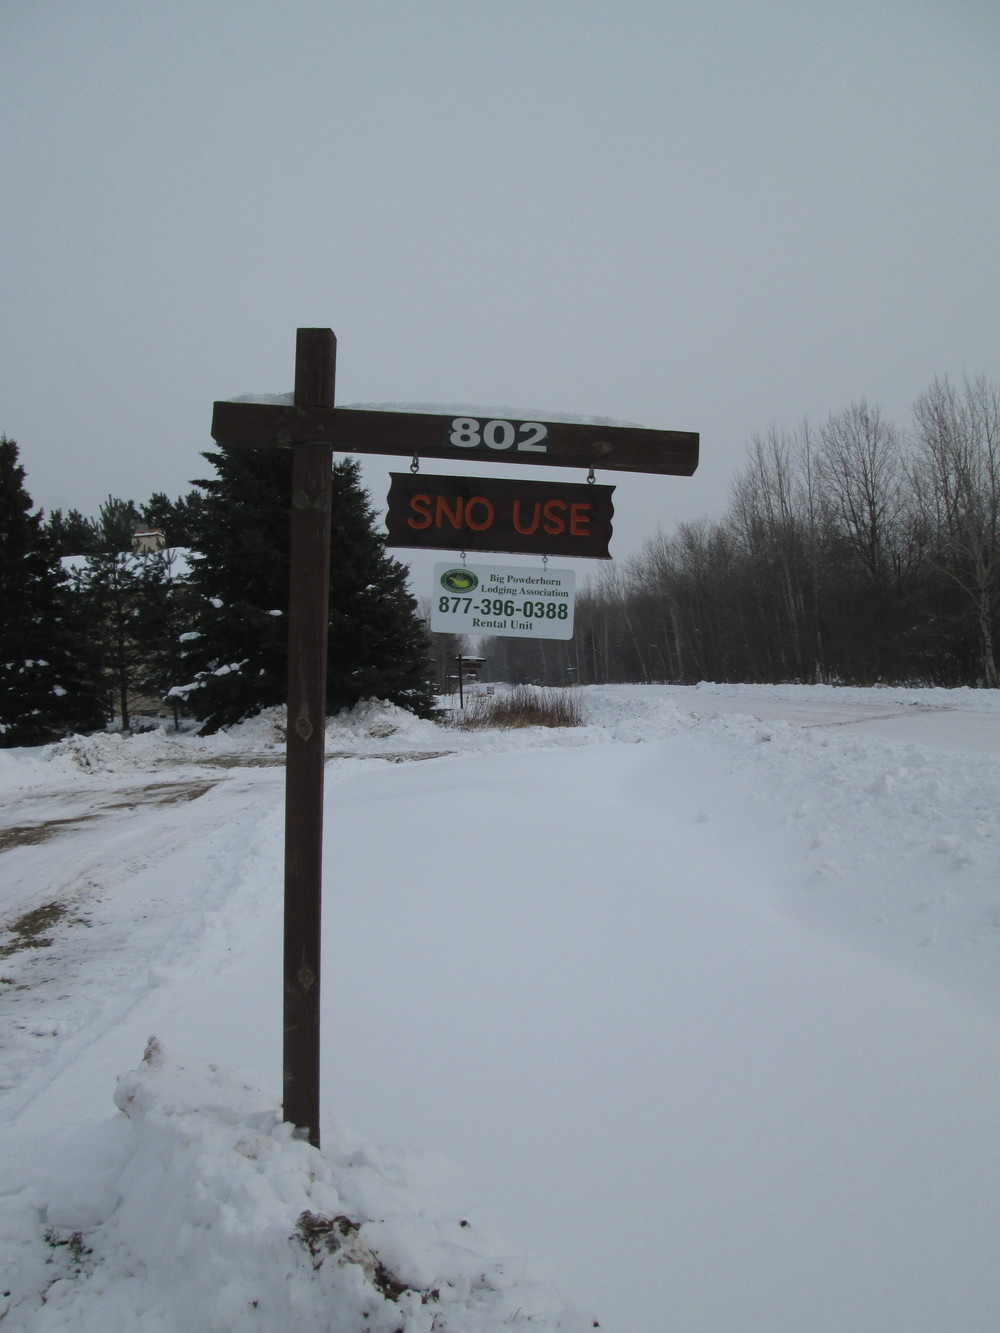 802 Sno Use Address Sign Winter.JPG